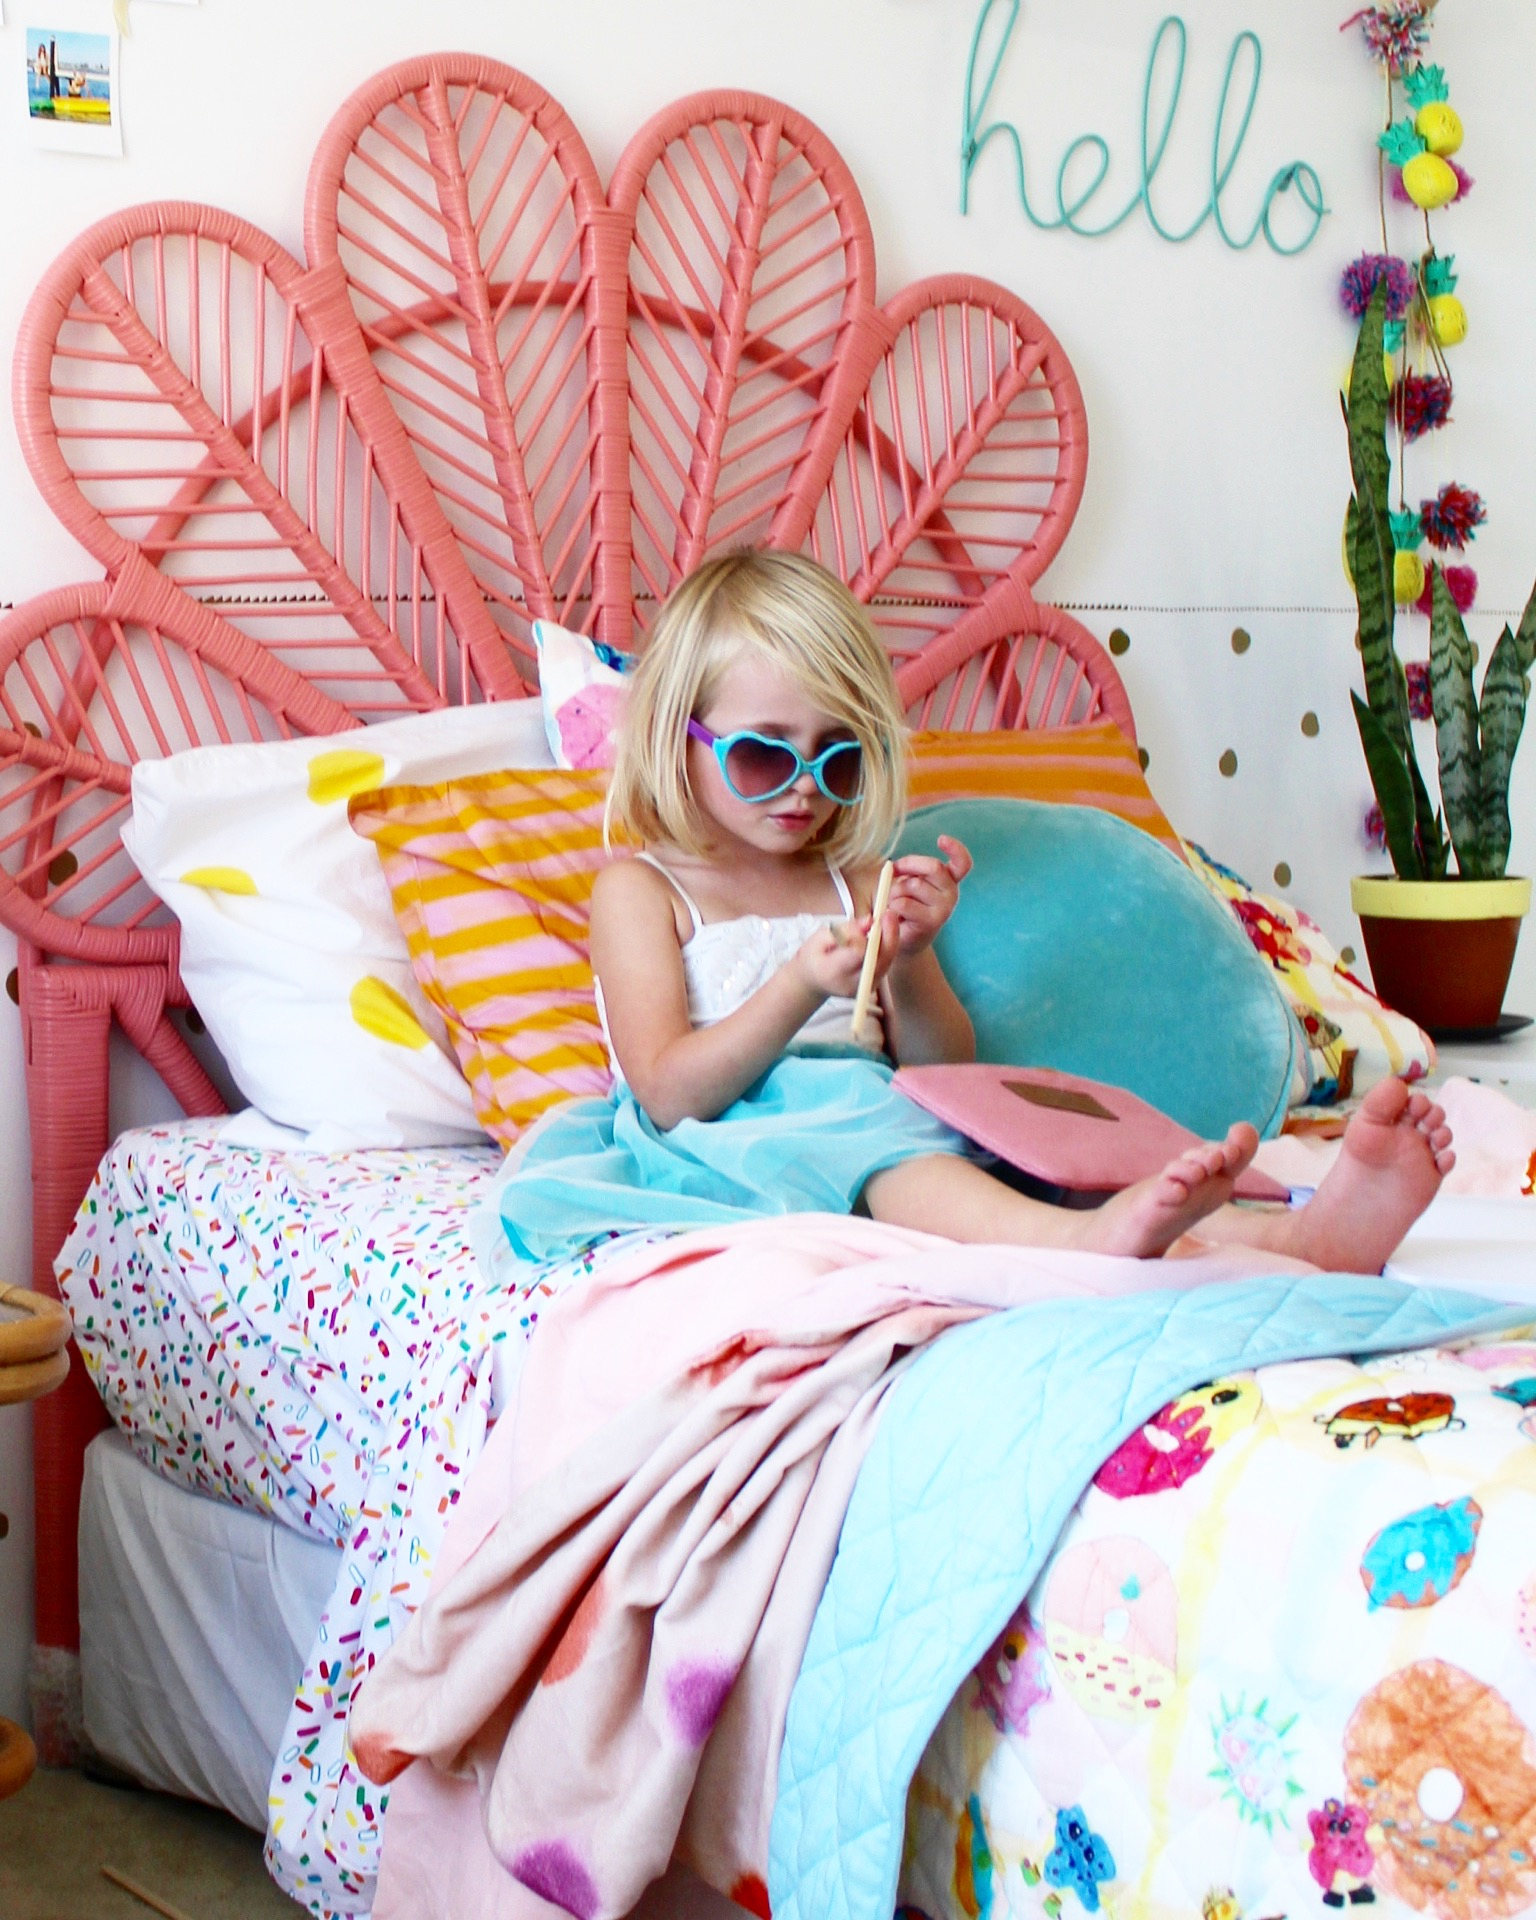 Modern Boho Kids rooms - Girls bedroom ideas |kids bedding and decor | modern boho bedroom ideas more on the blog